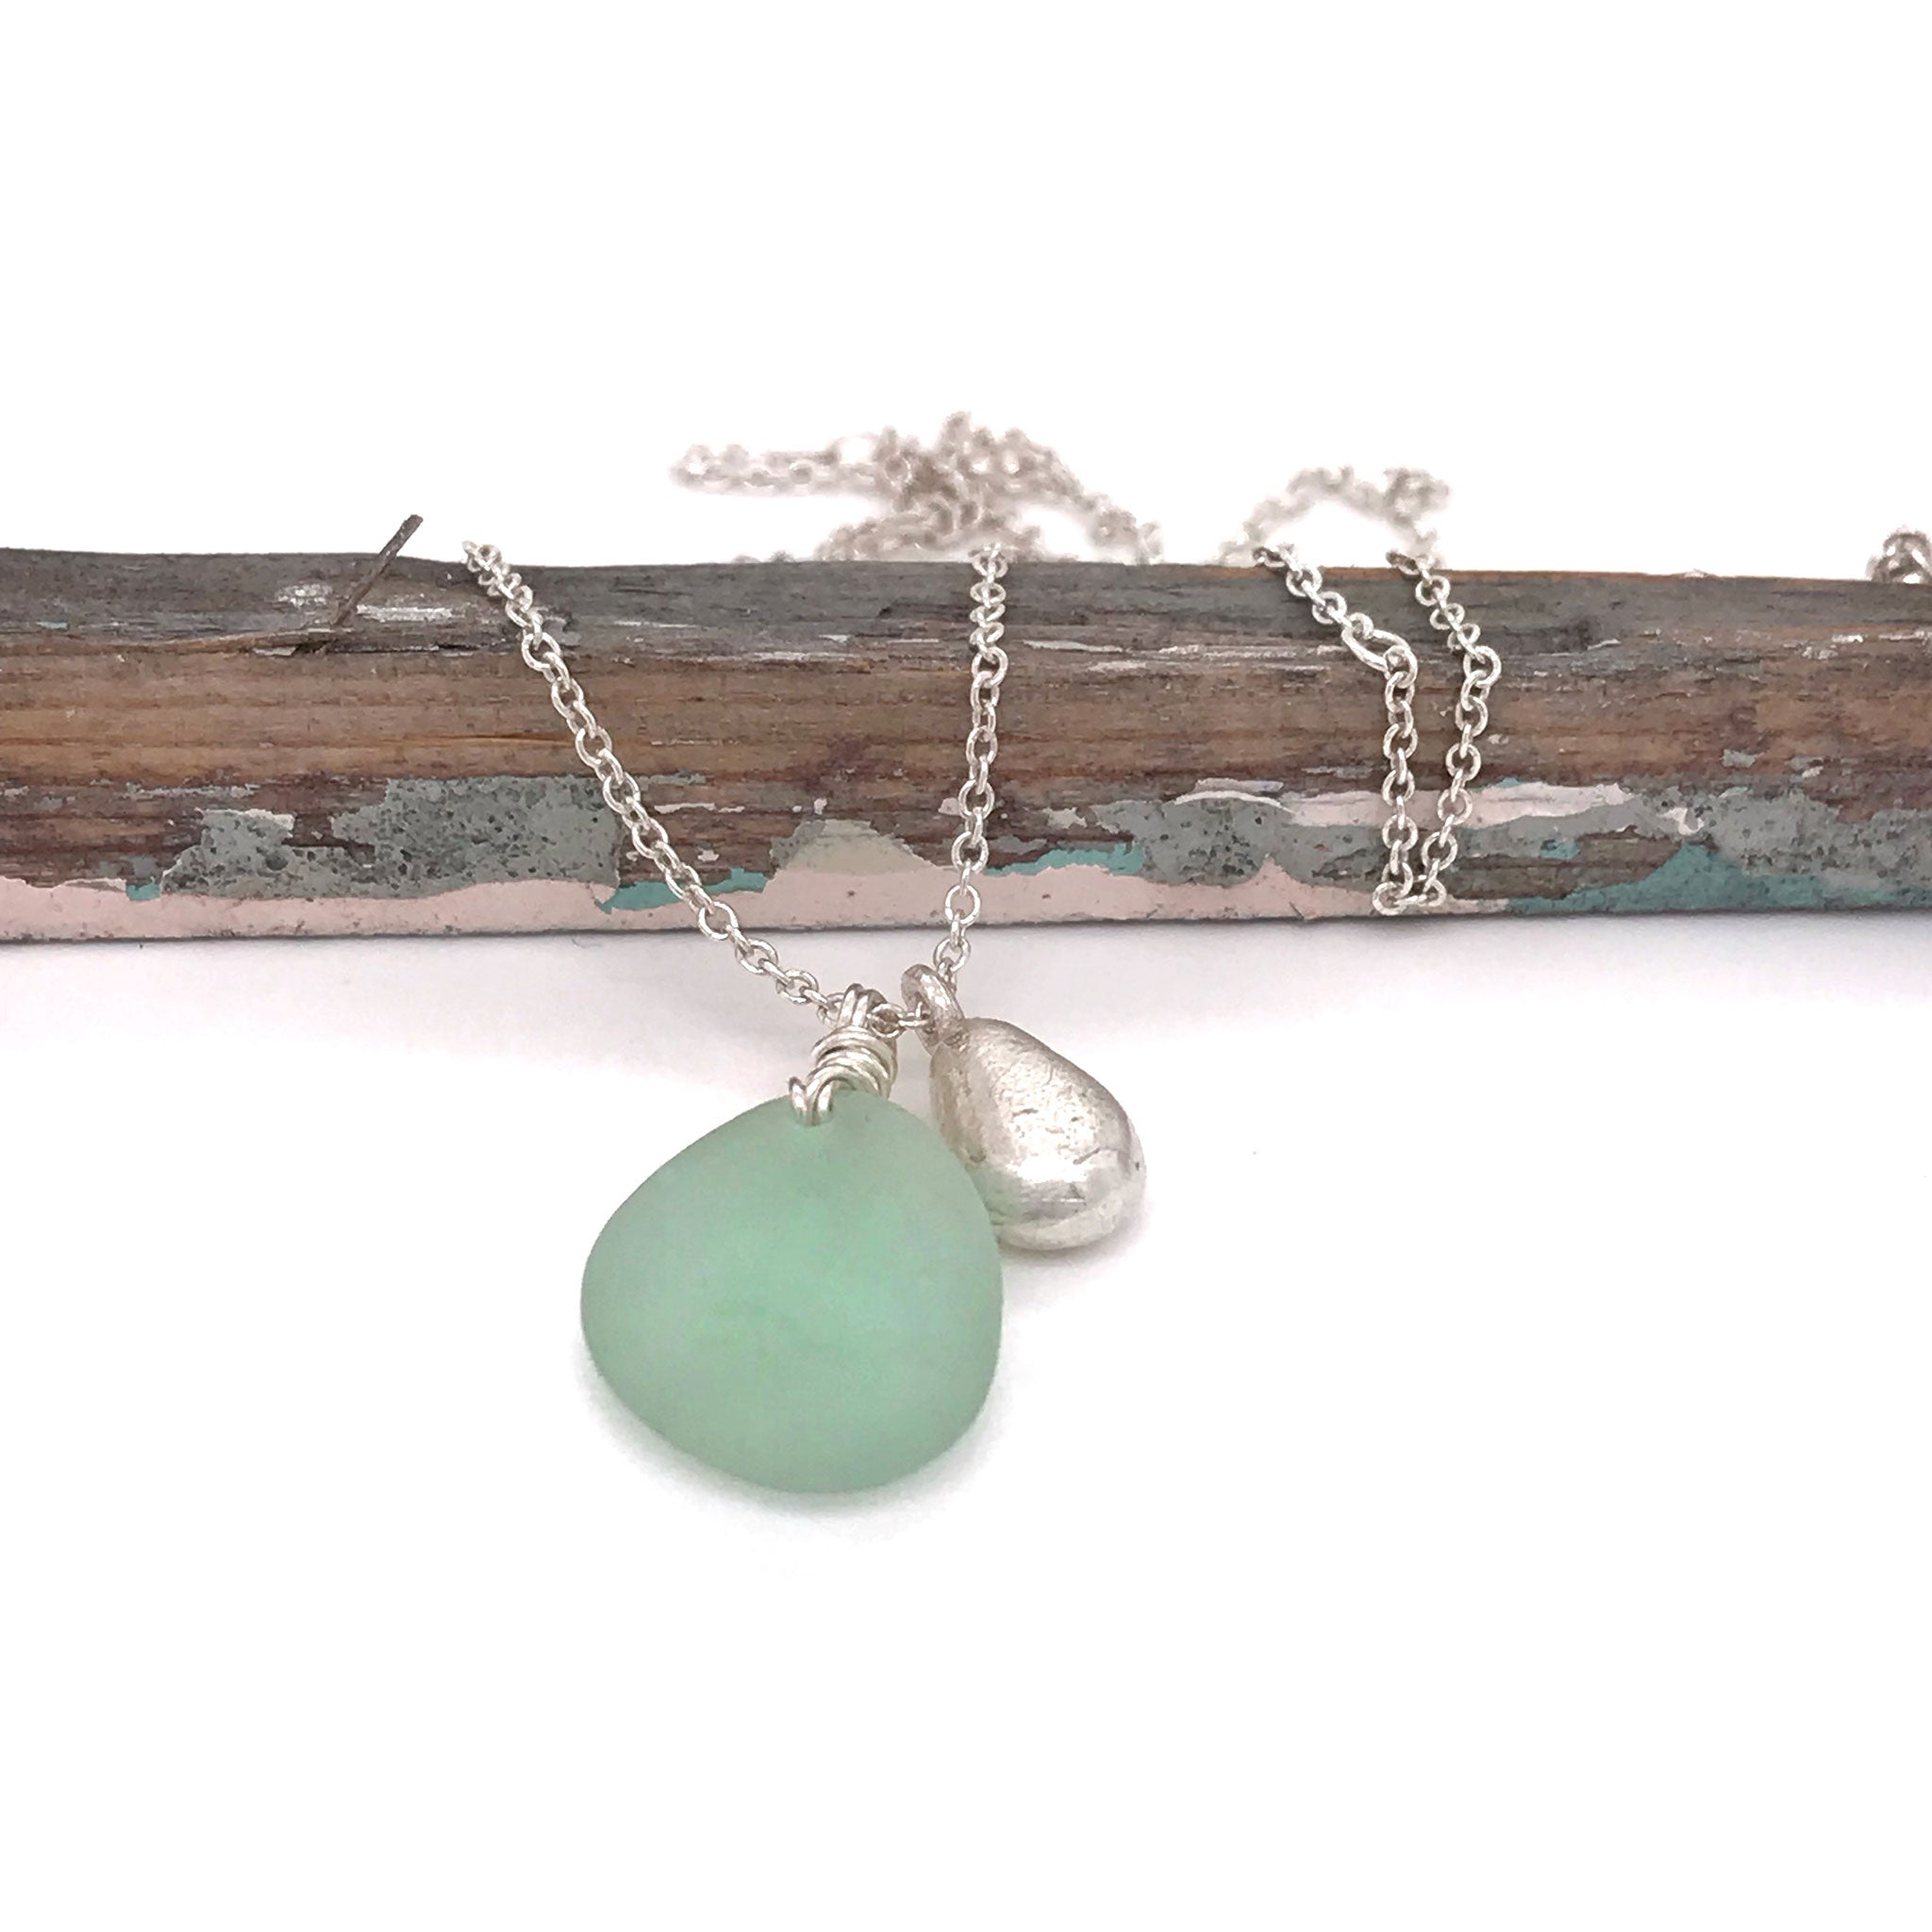 Pale Green Seaglass Necklace with Solid Silver Teardrop Charm - kriket-broadhurst jewelry